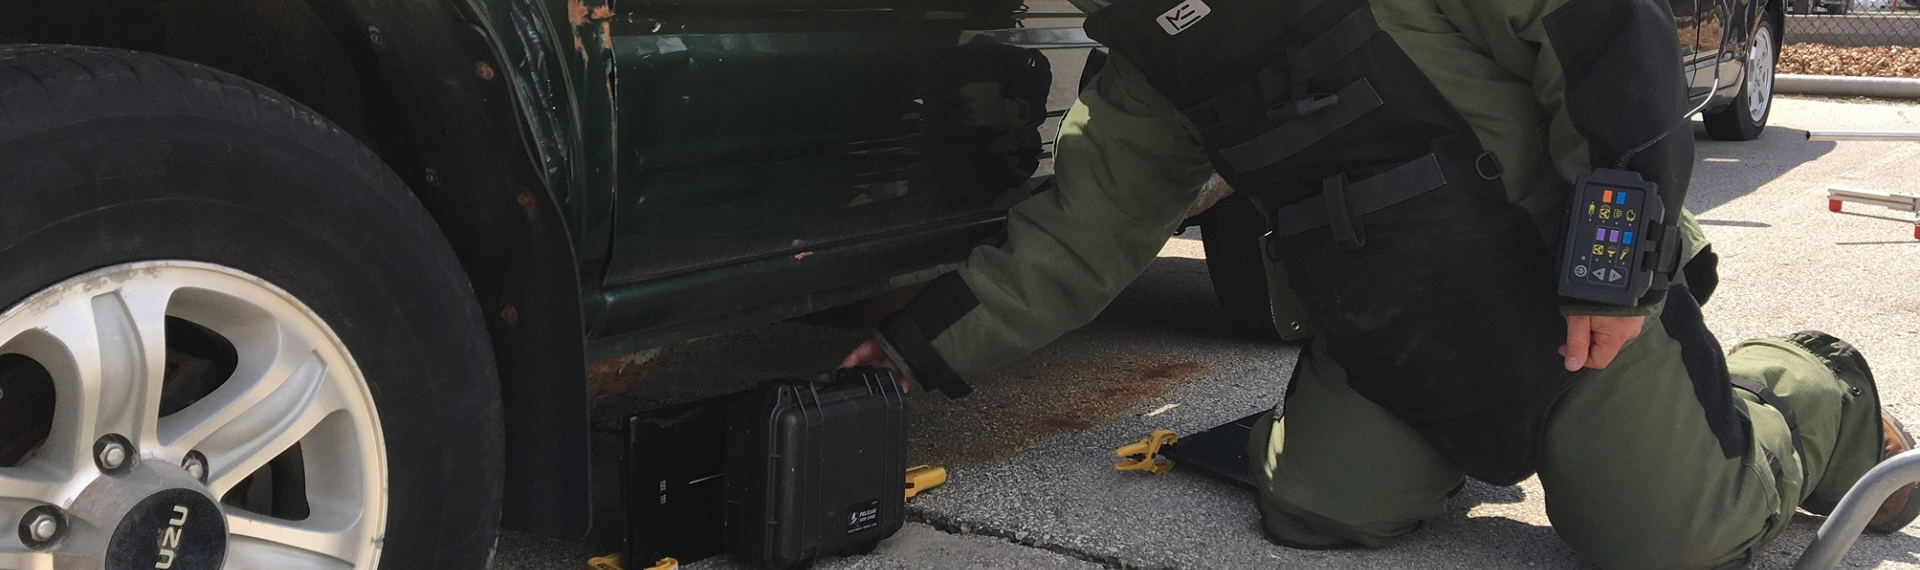 Special agent in bomb suit with portable xray machine and suspicious package under a vehicle.